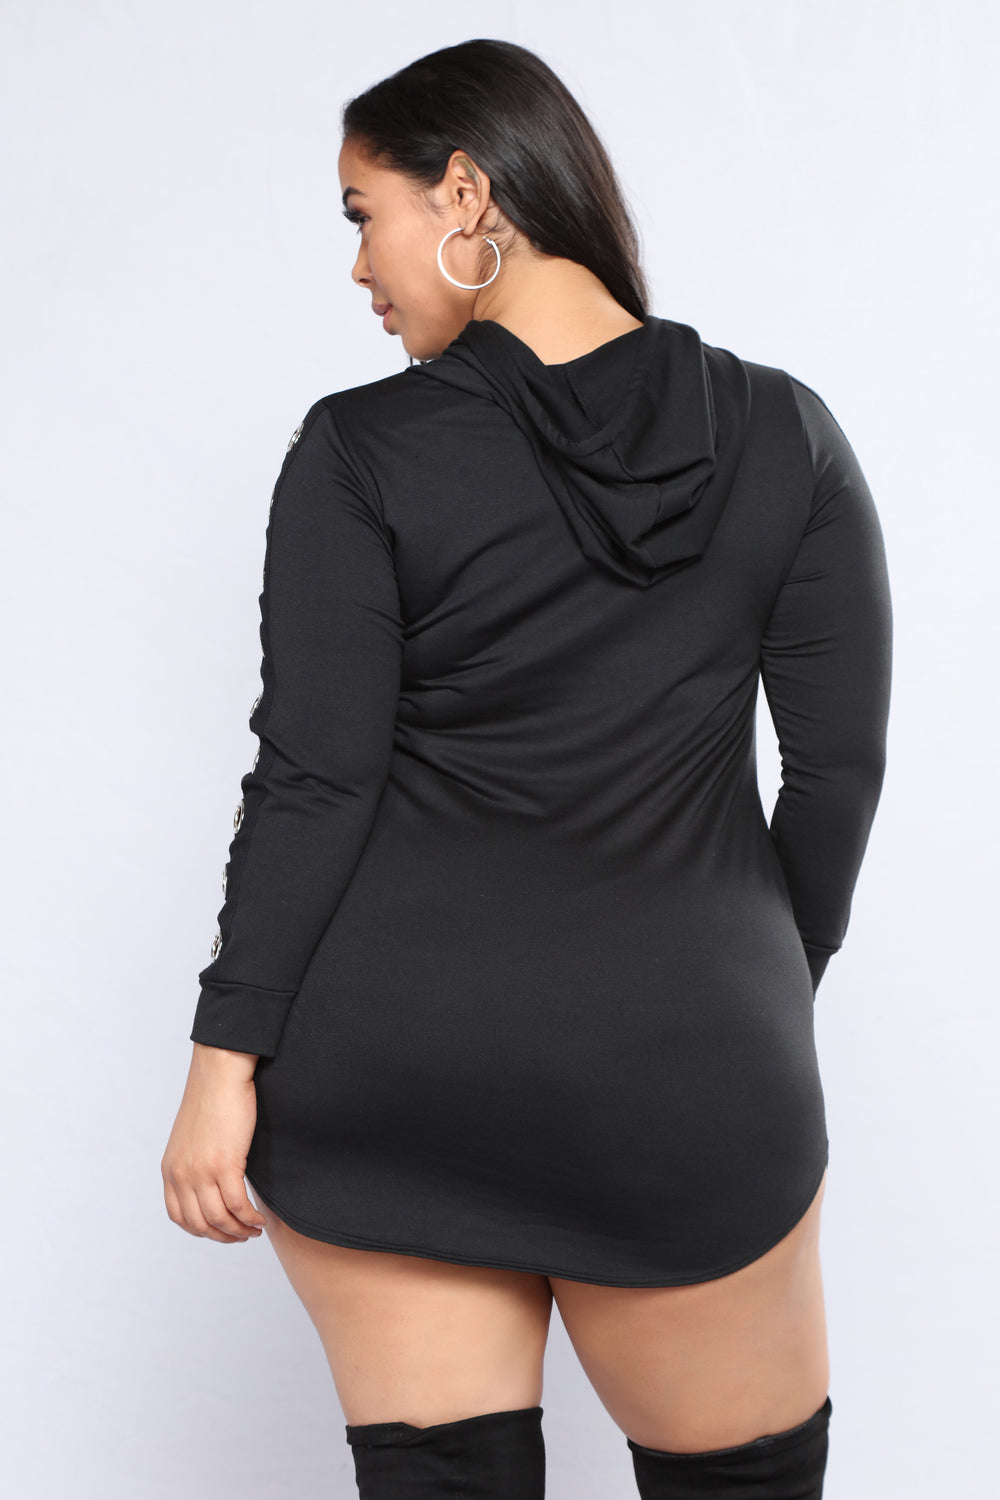 Gather Round Grommet Dress - Black